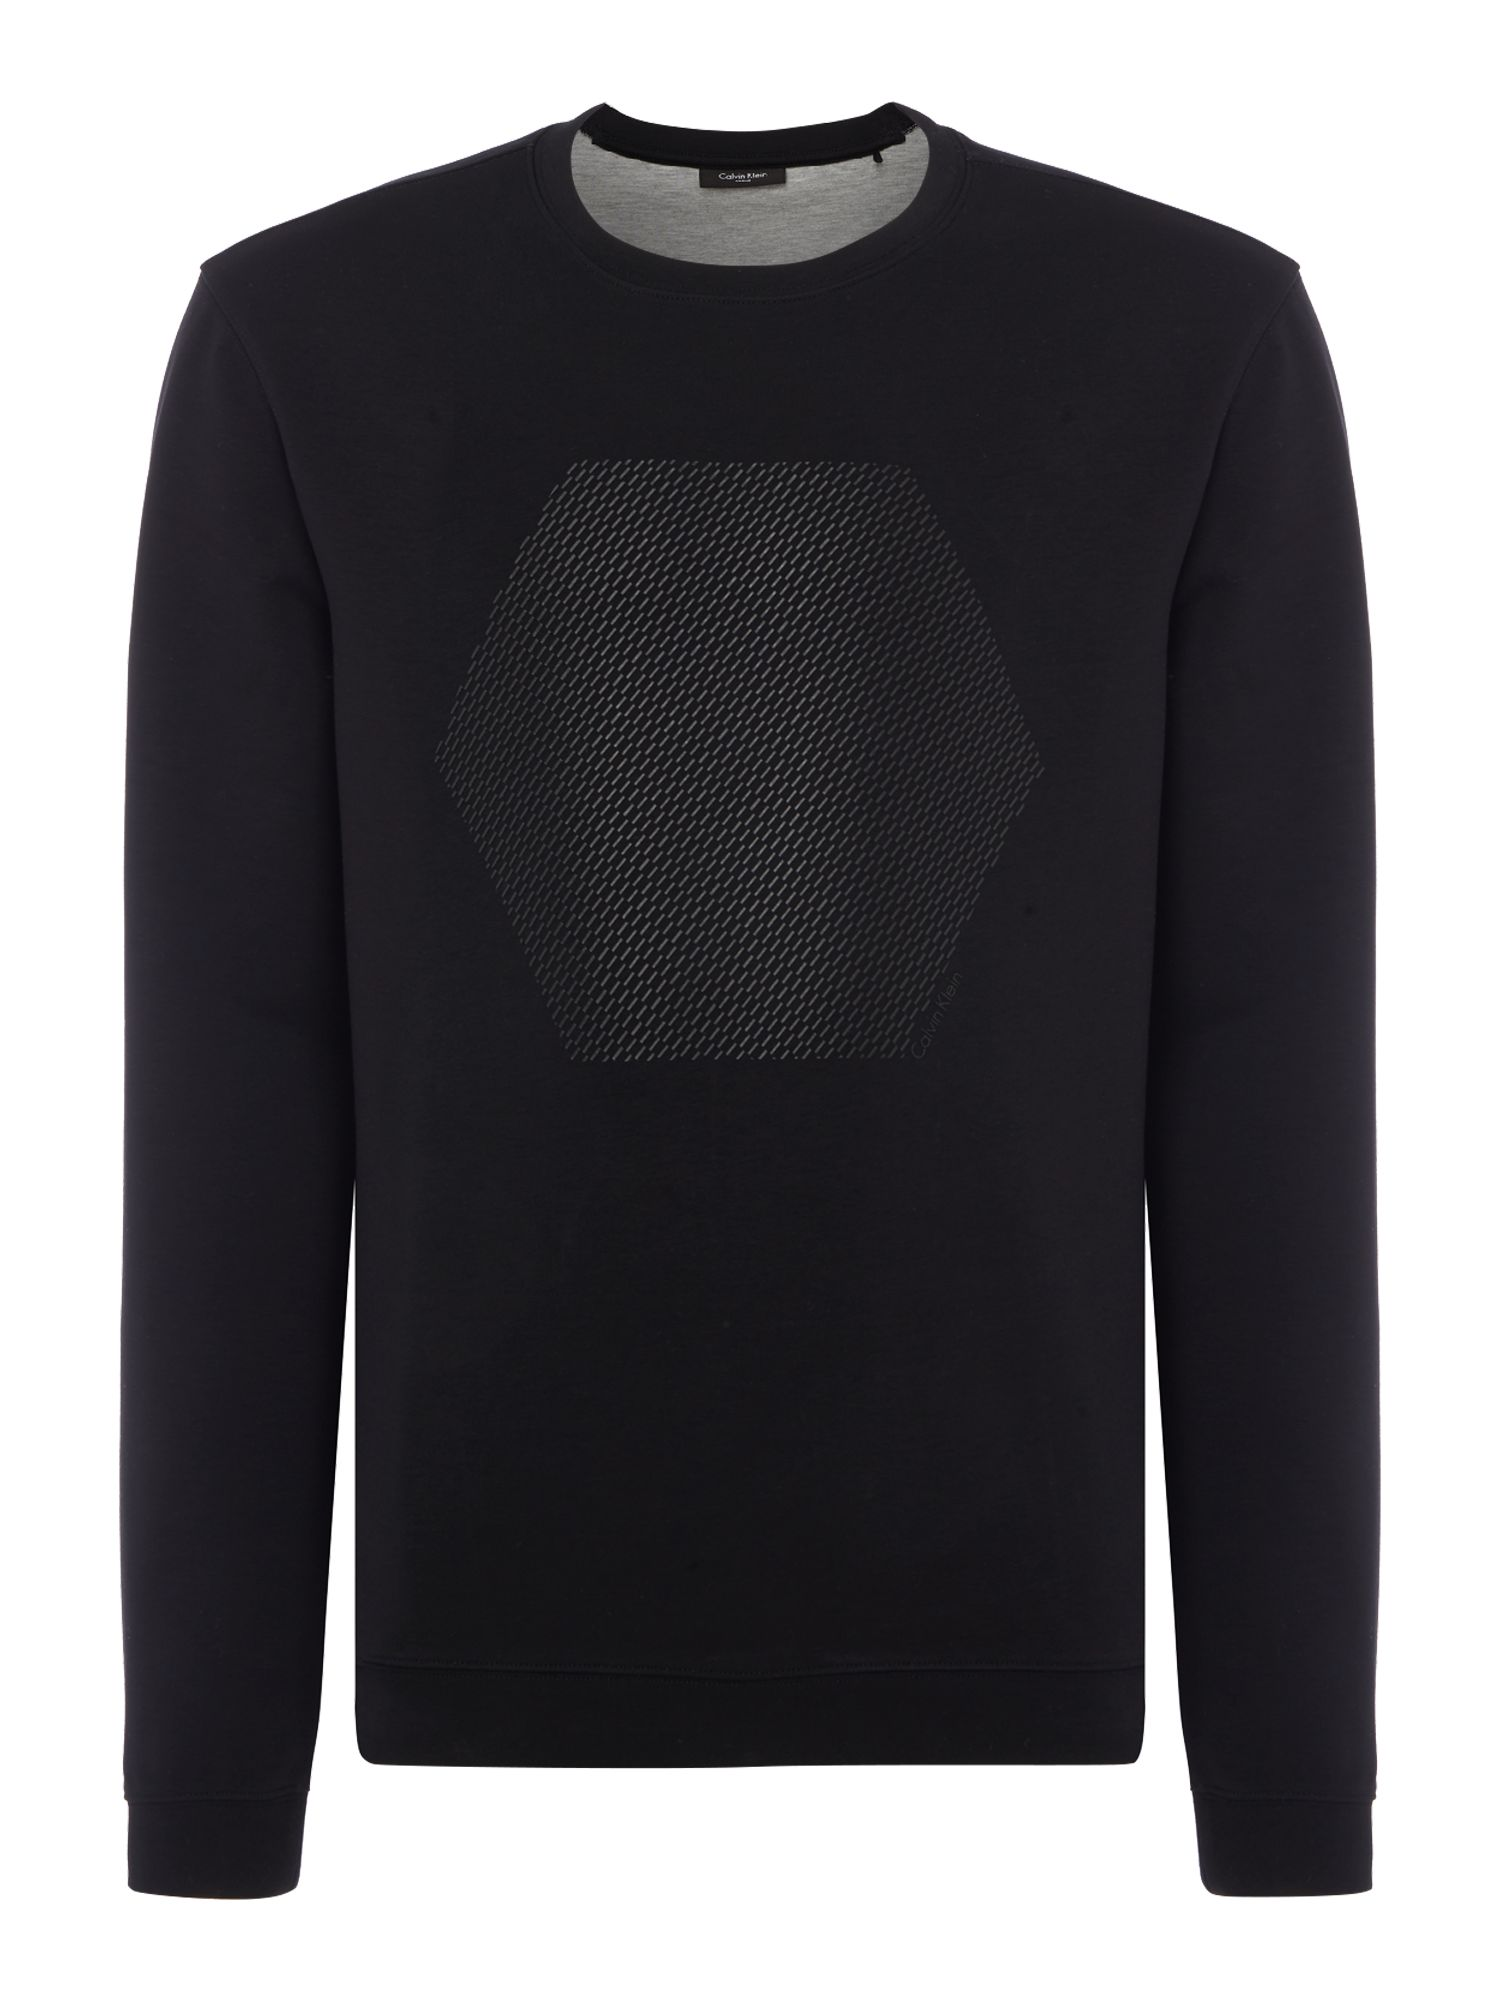 Men's Calvin Klein Kares Lightweight Sweater, Black